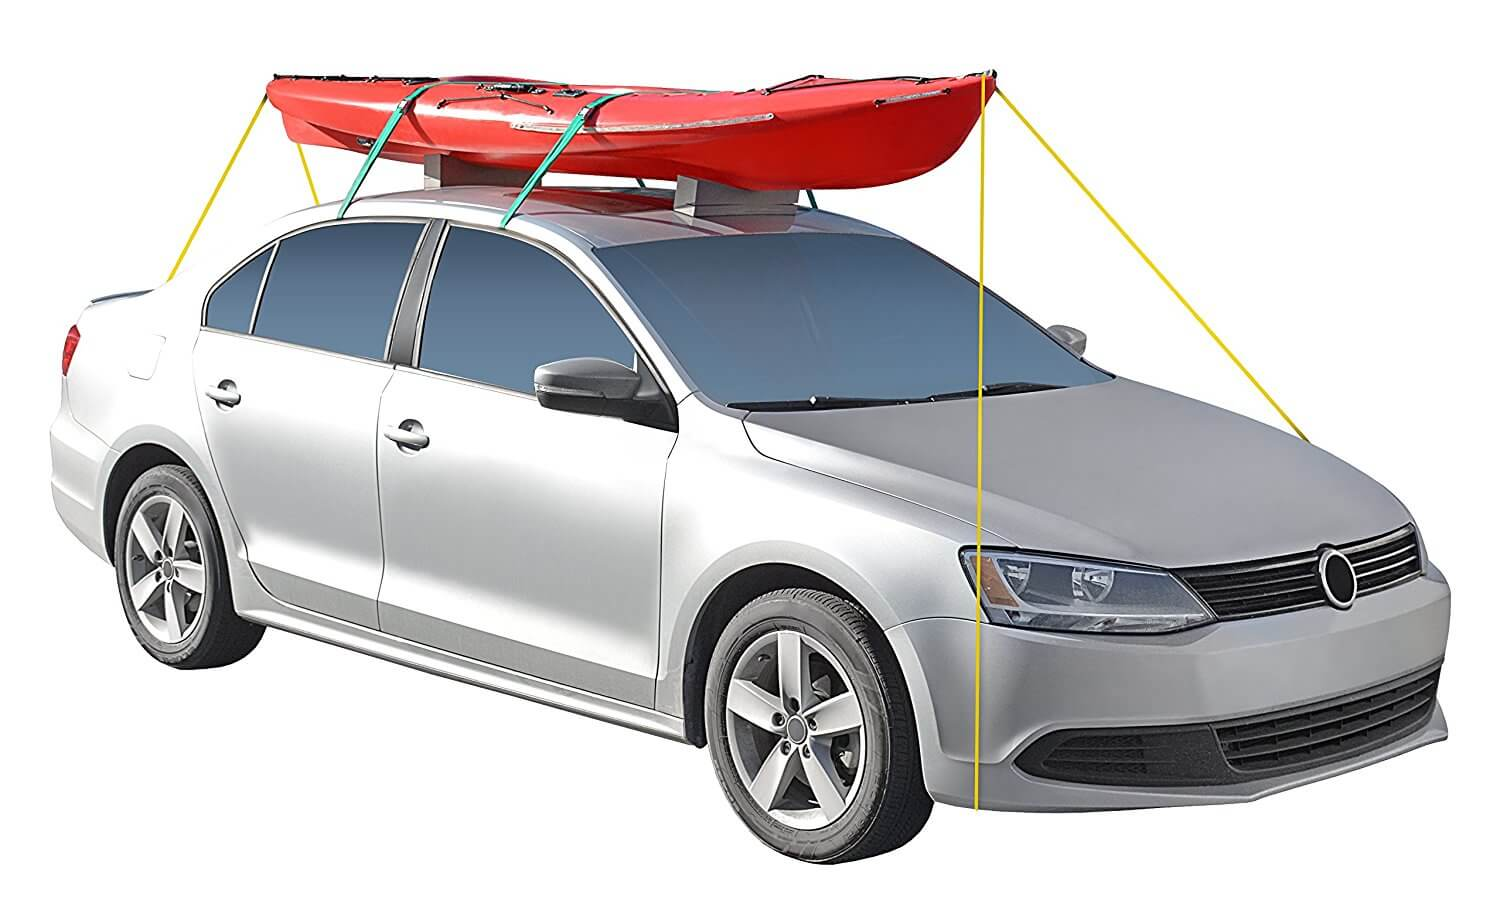 transport a kayak without roof rack